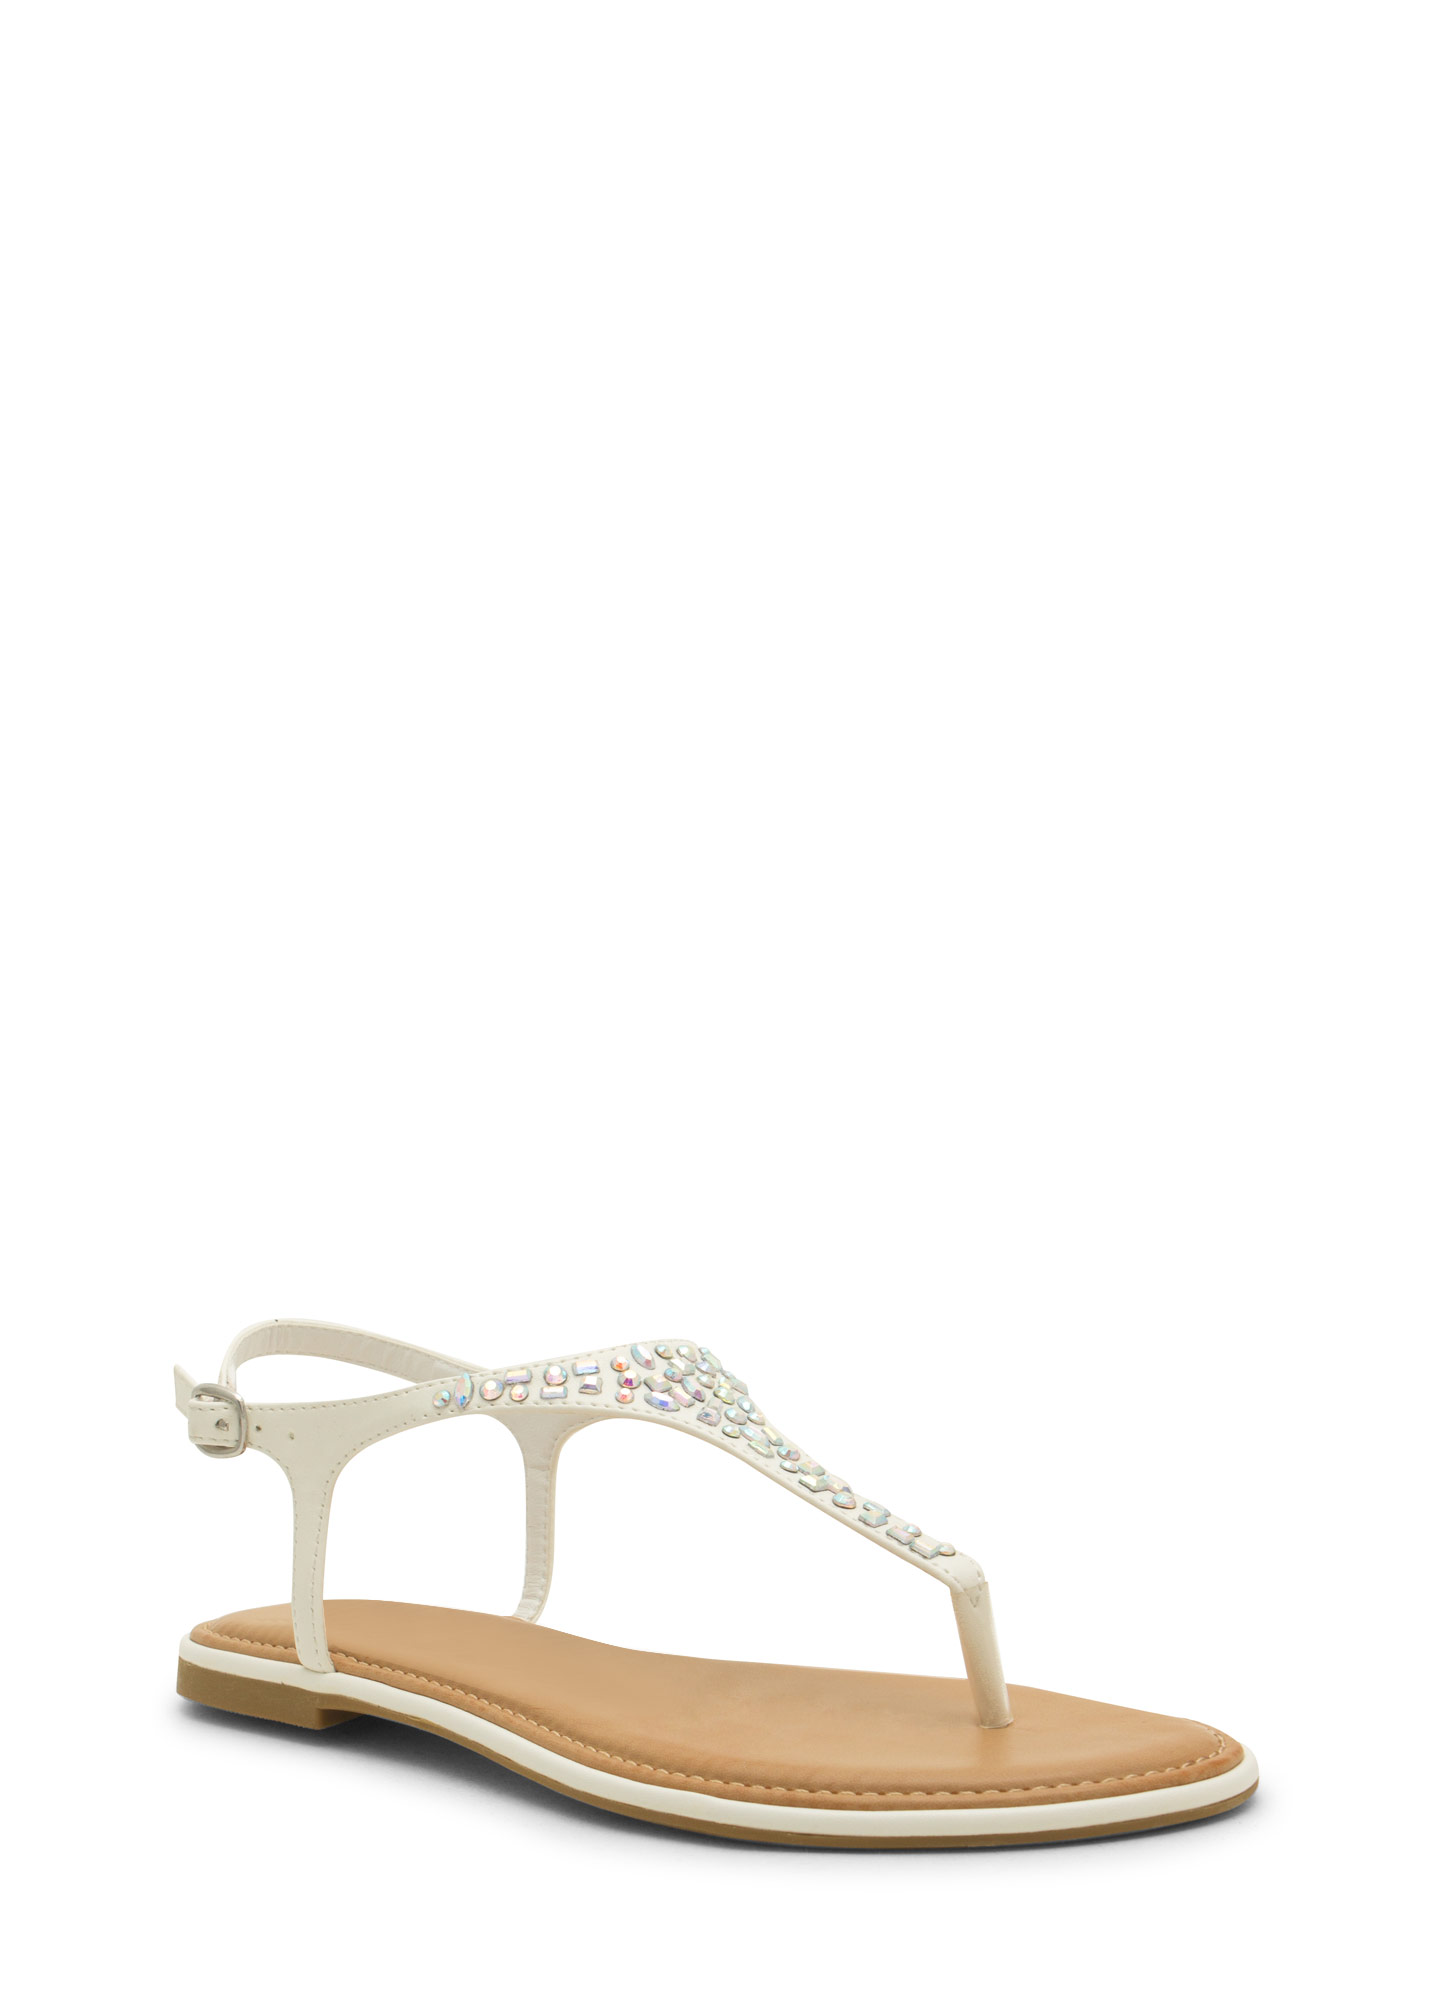 Embellished Tapered T-Strap Sandals WHITE